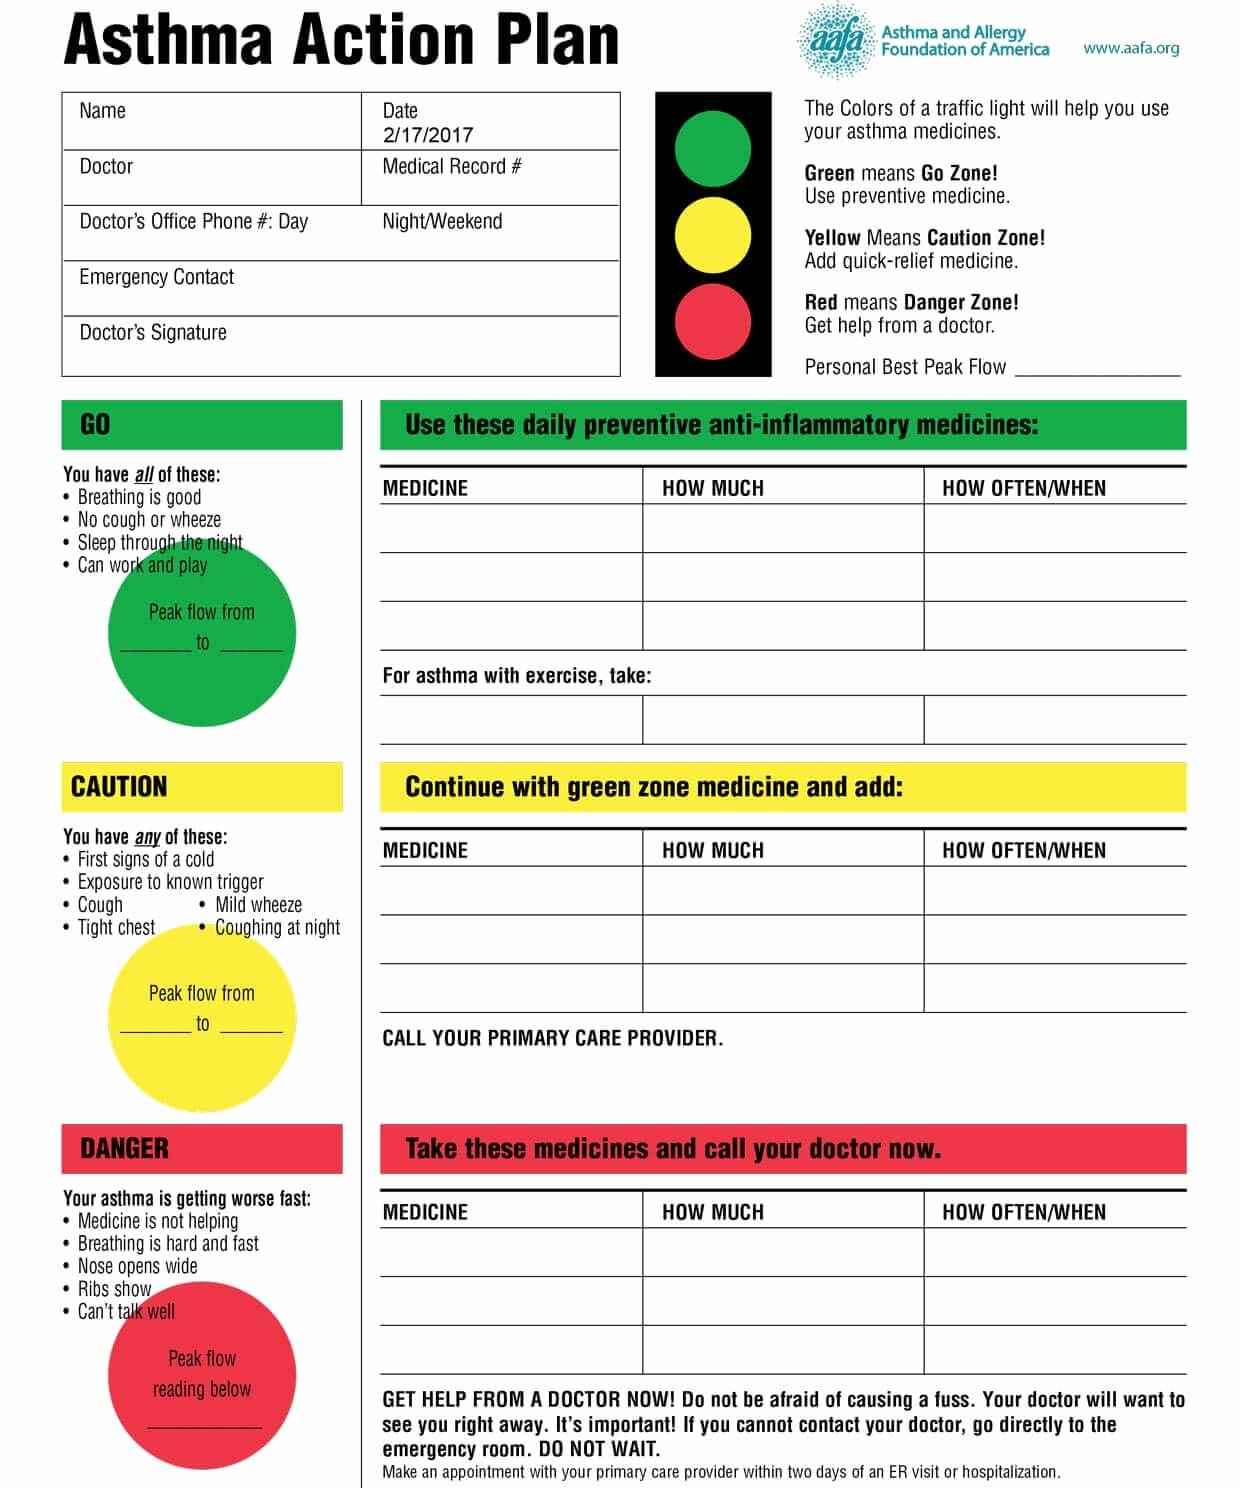 Asthma Action Plan Template Luxury asthma Action Plan